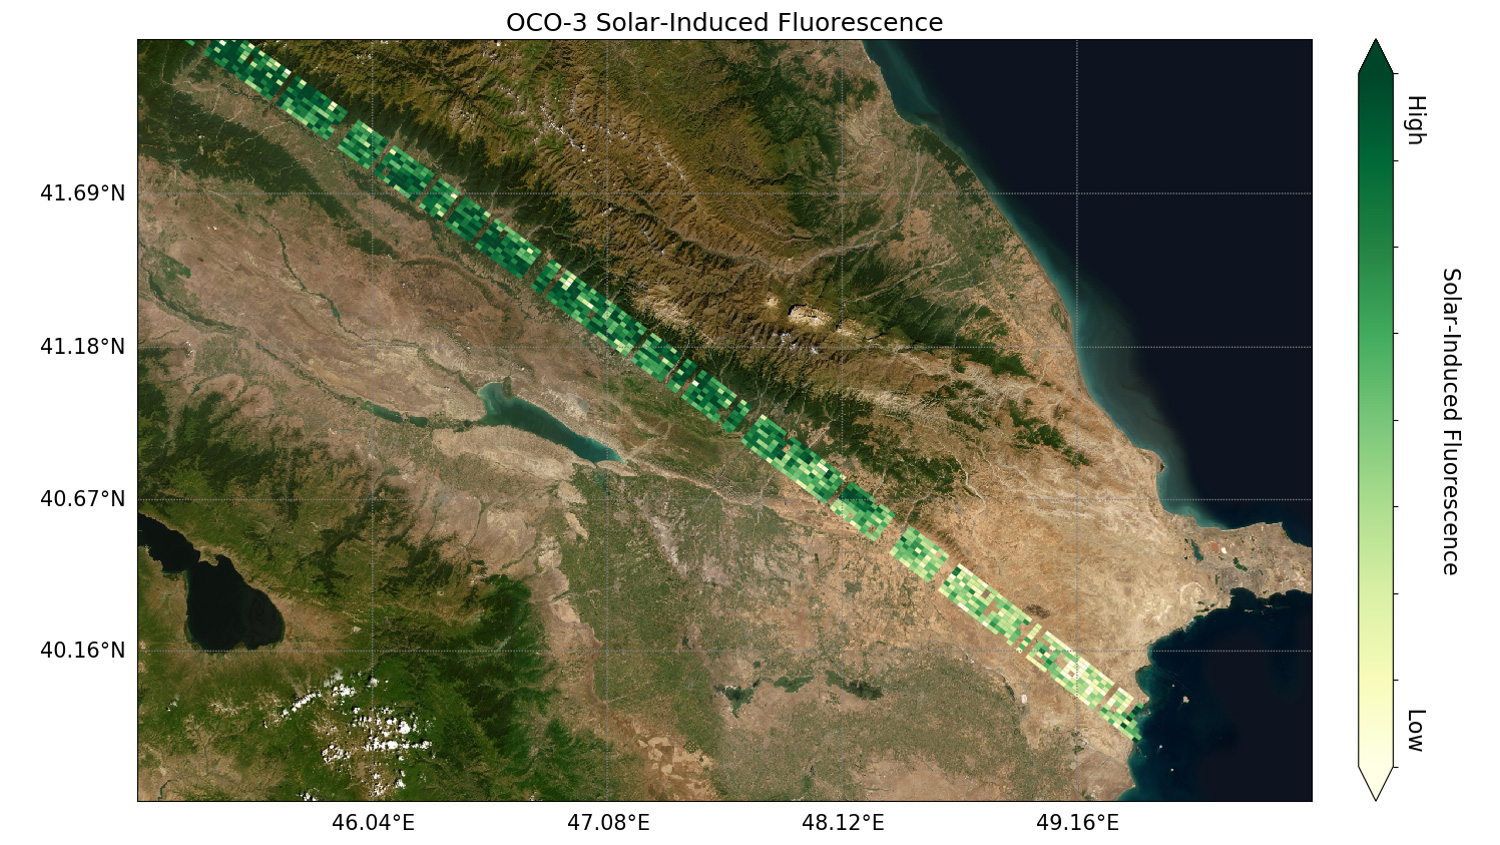 Preliminary solar-induced fluorescence (SIF) measurements from OCO-3 over western Asia.